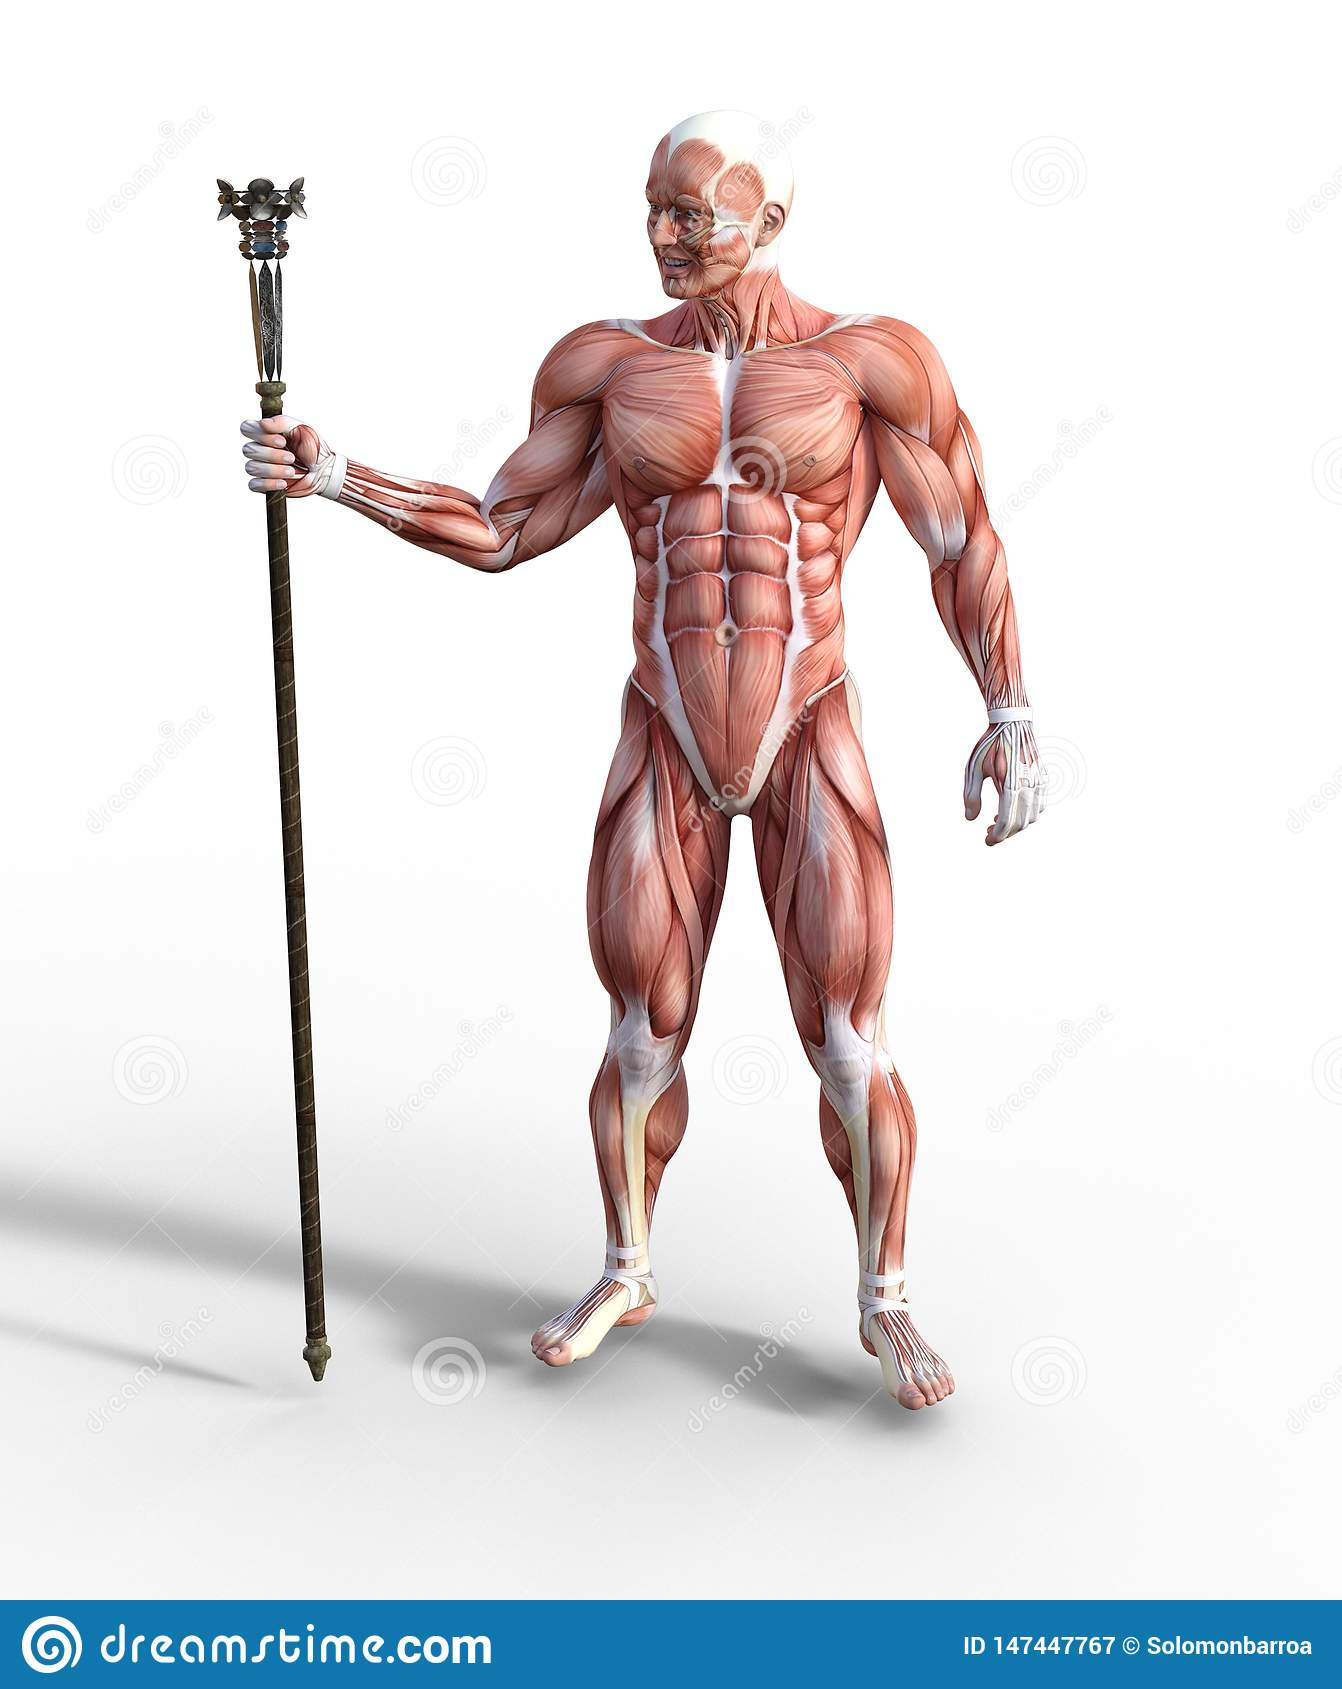 3D Illustration of Male Muscular System holding a staff